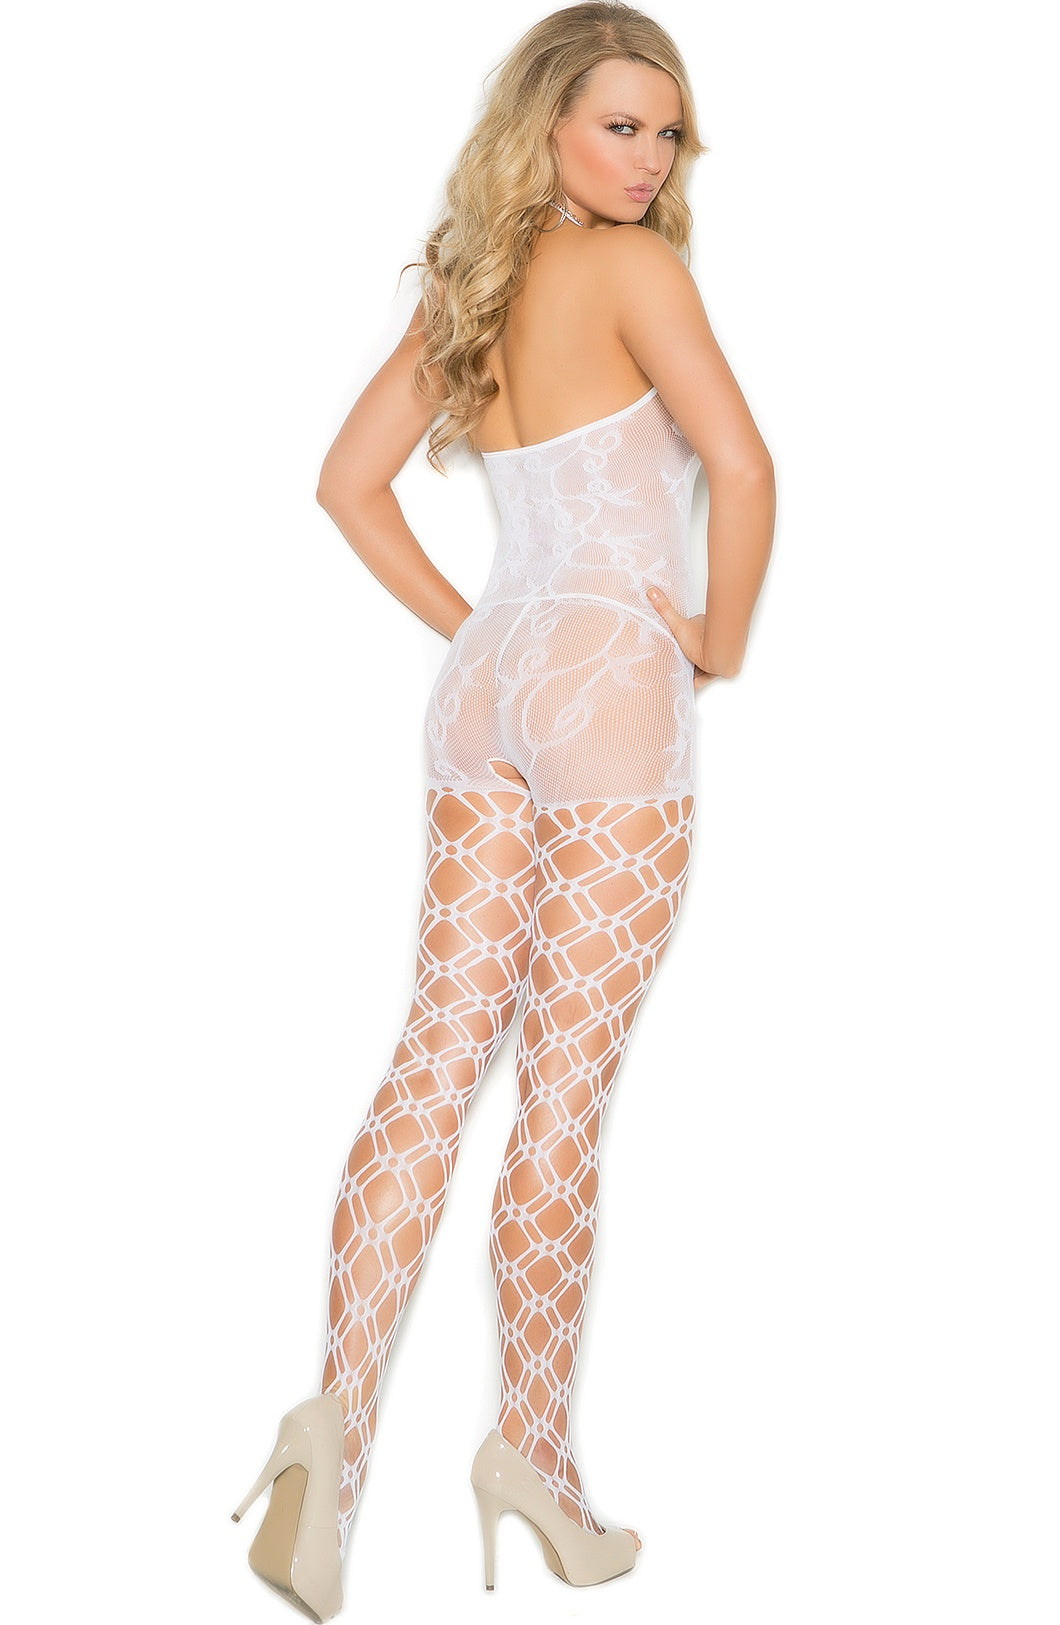 EM-1656 White Crochet Bodystocking